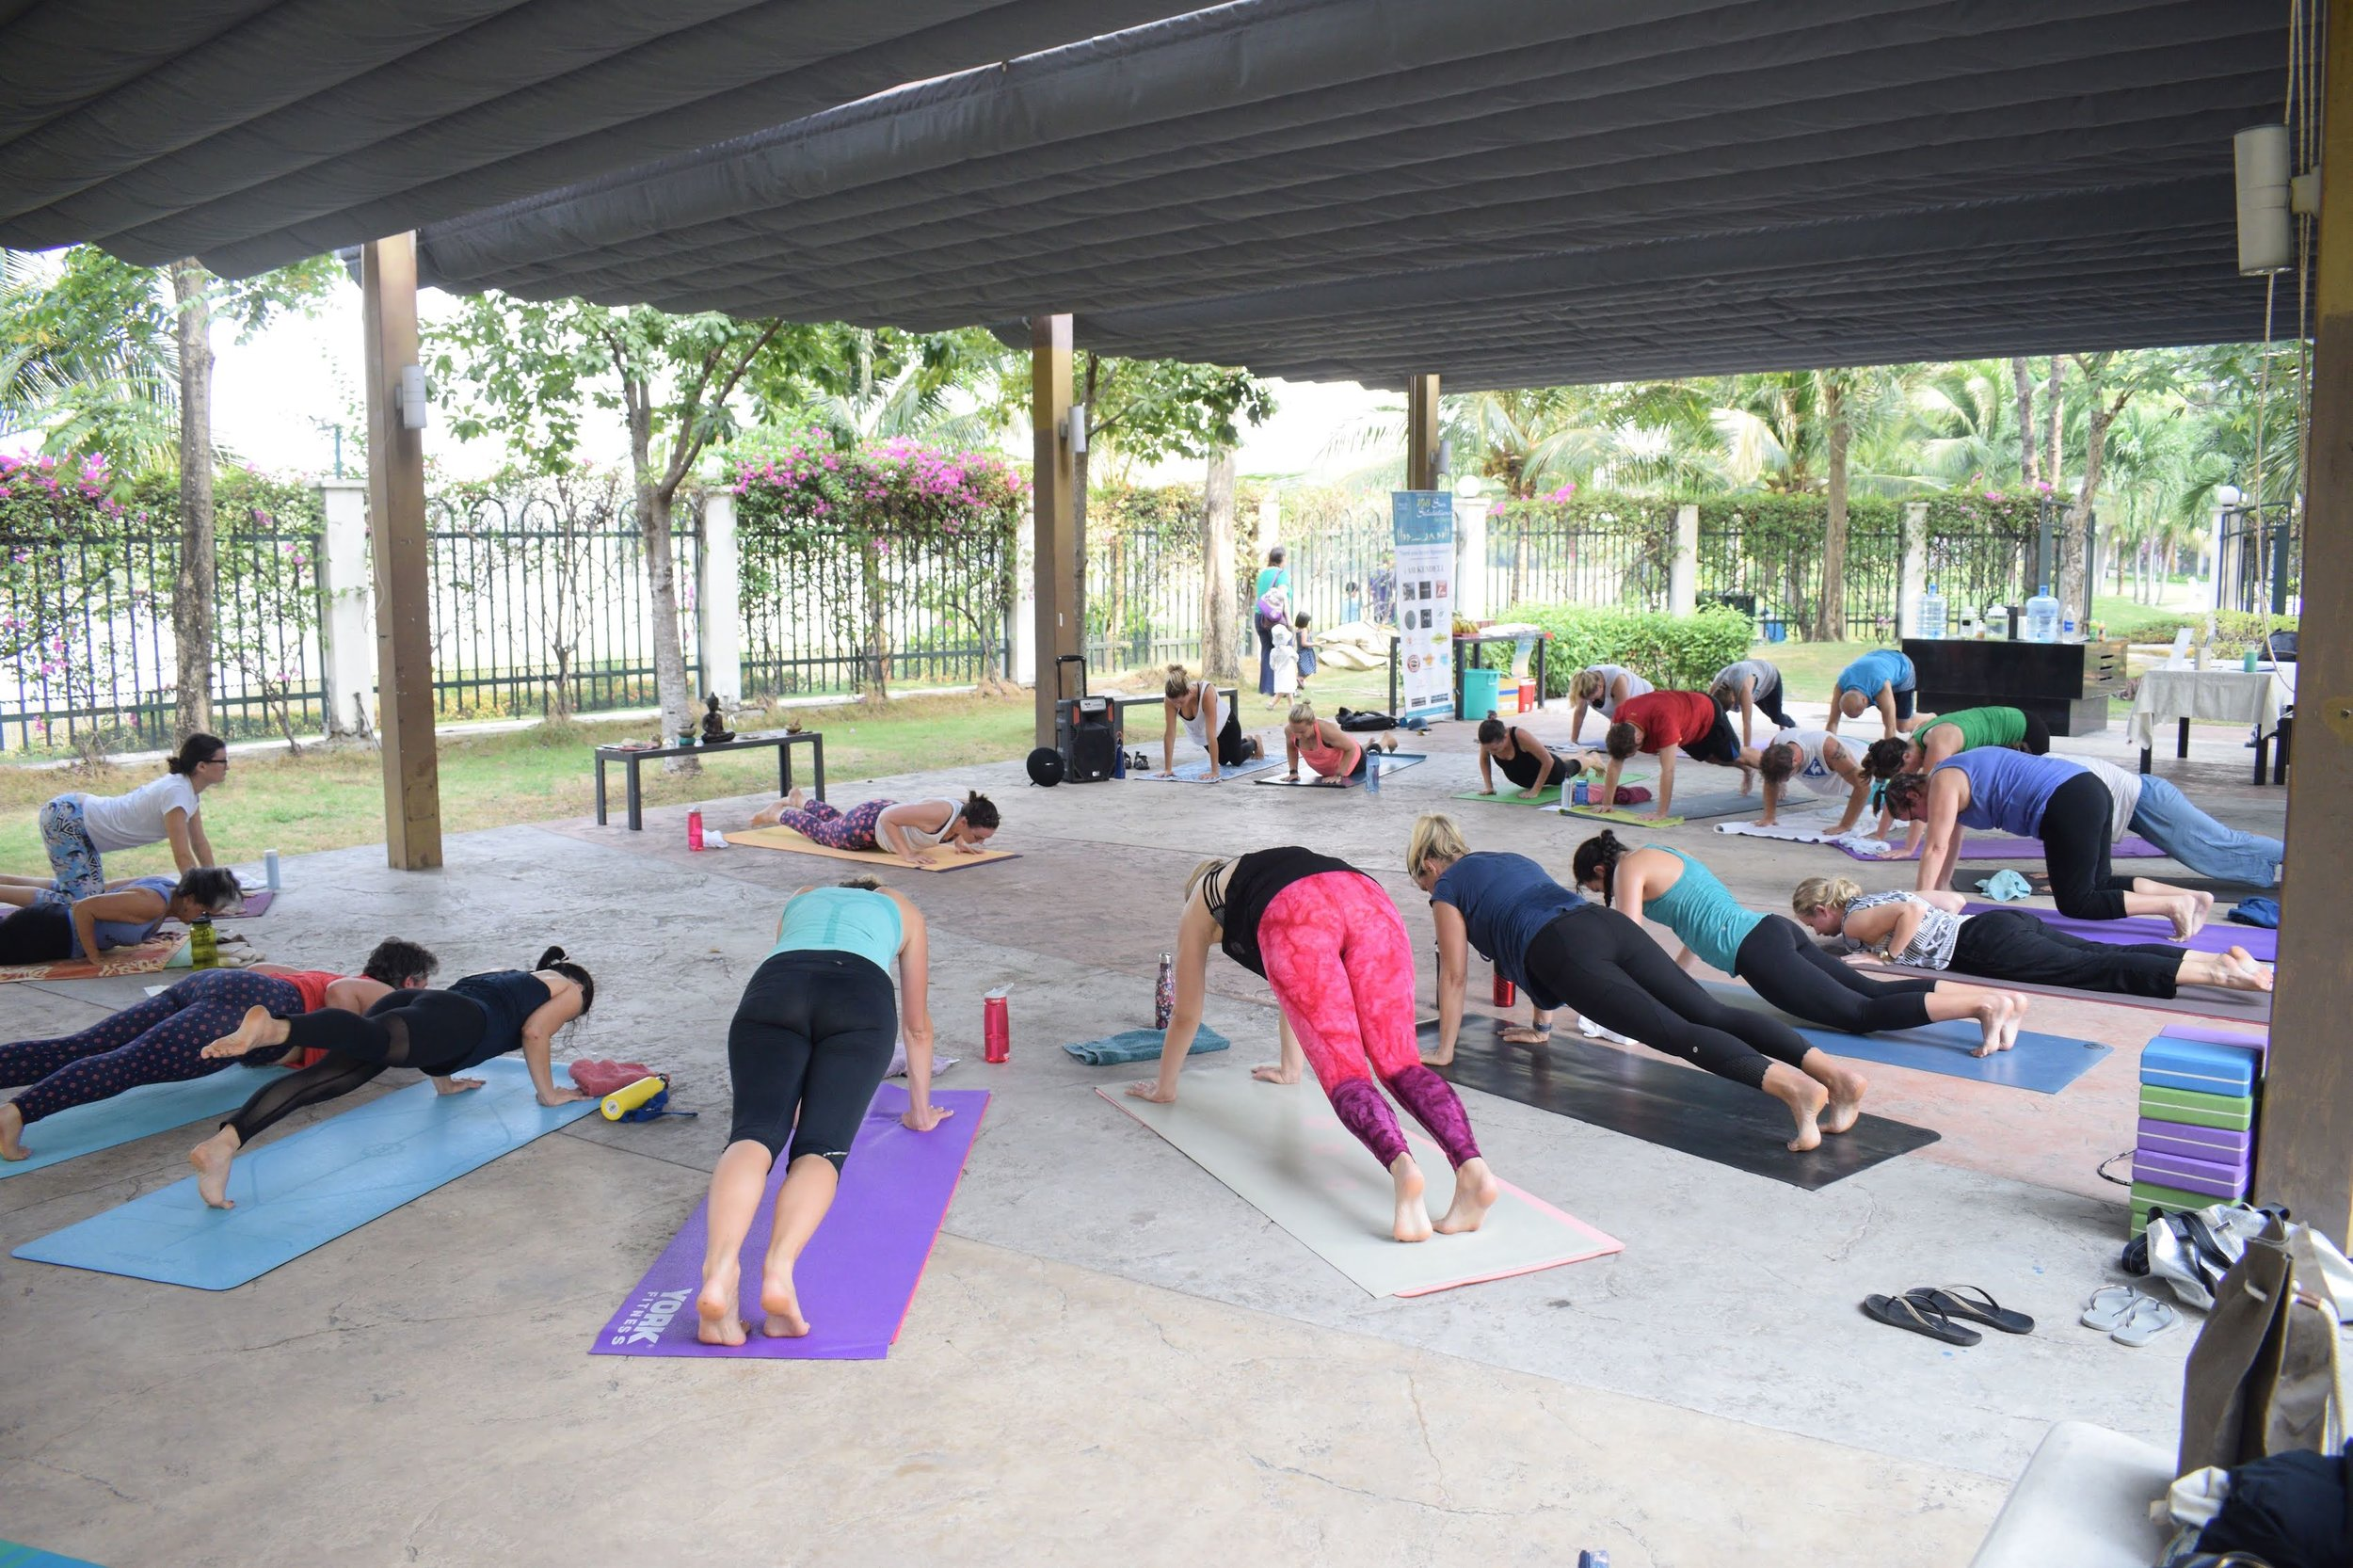 108-sun-salutations-yoga-joy-saigon-group.jpg